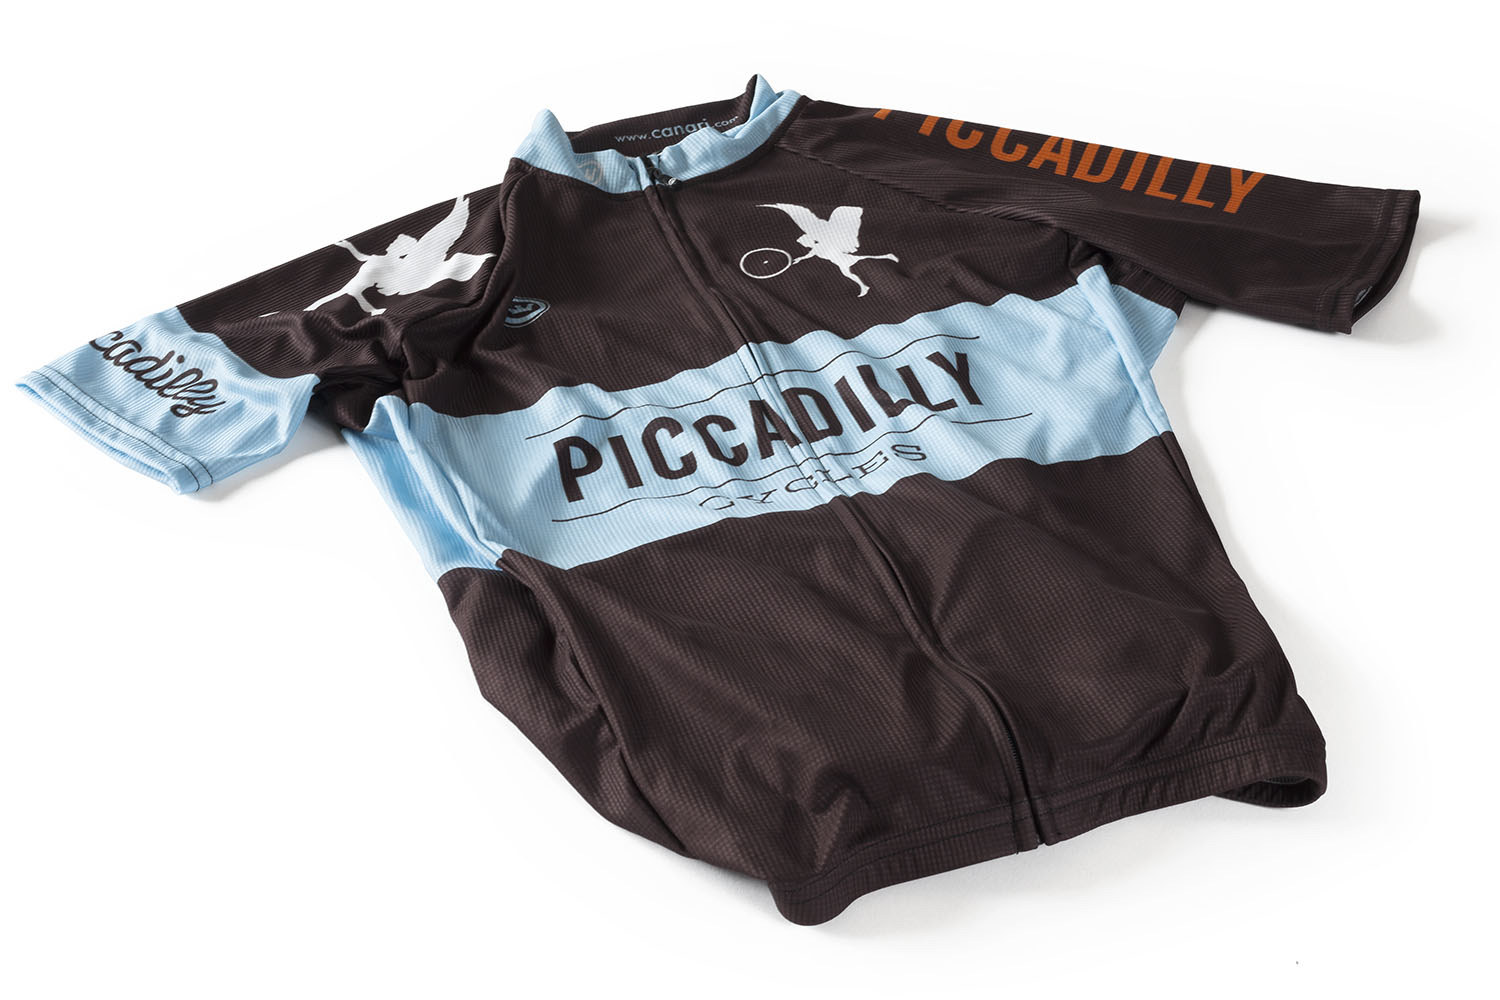 piccadilly_jersey_ft_2017_web.jpg